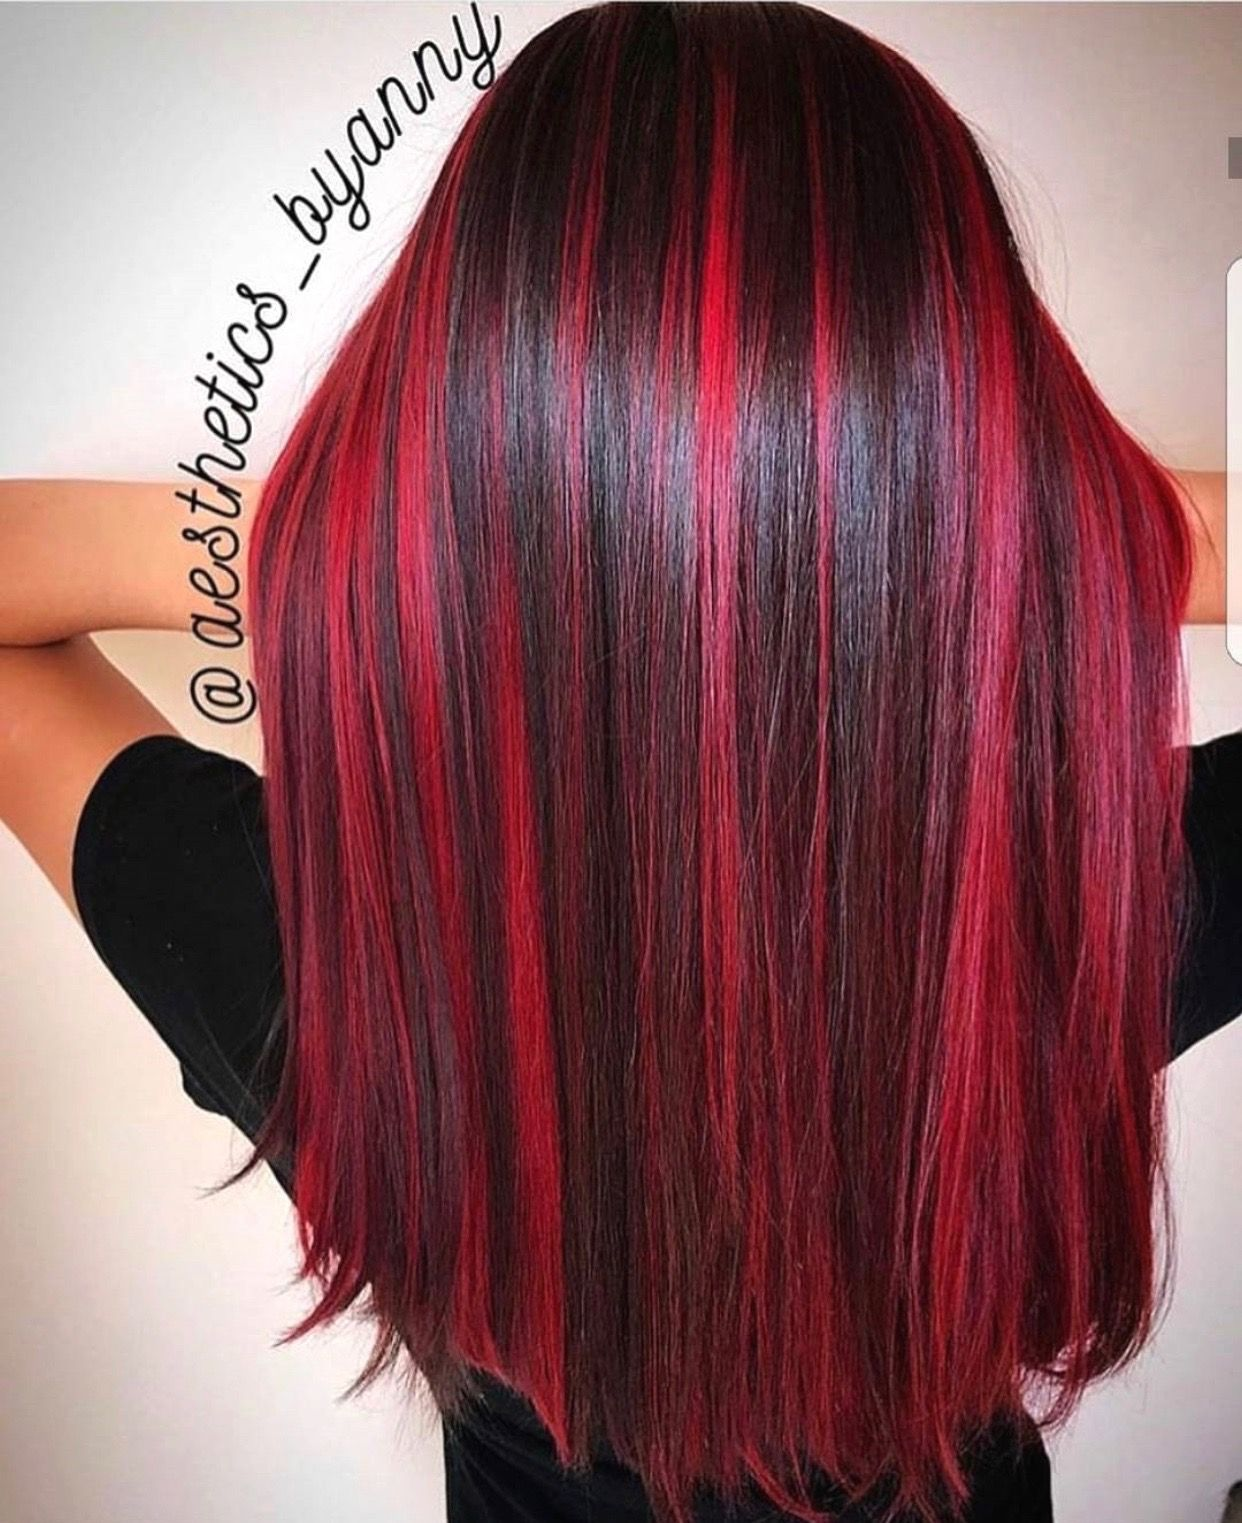 Black Long Hair With Lots Of Dark Pink Red Burgundy Highlights Color Added Hair Color For Black Hair Red Hair With Highlights Hair Highlights